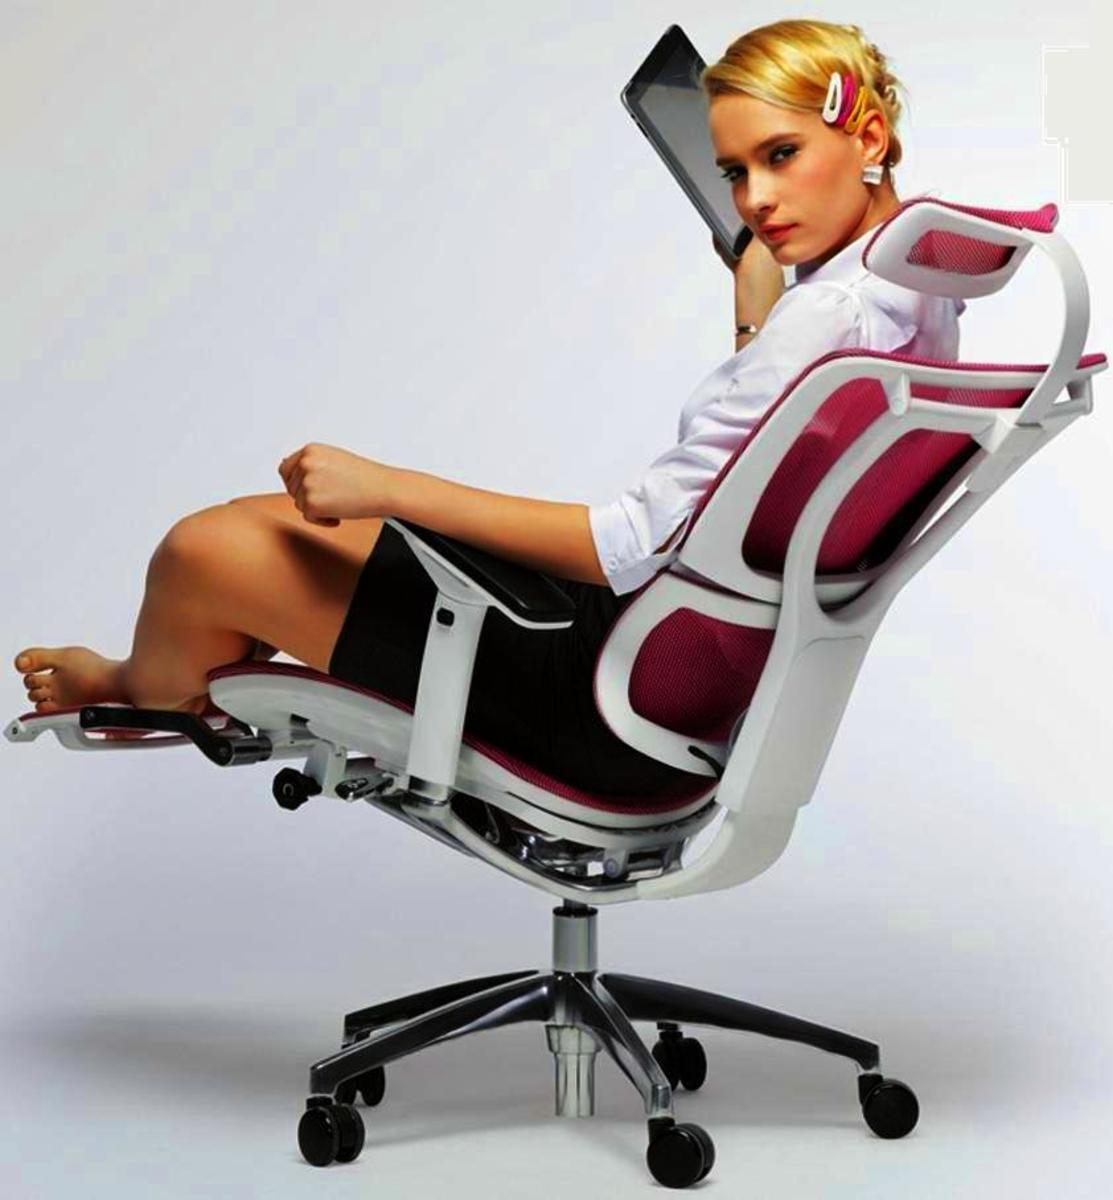 Ergonomic Office Chairs Best Ergonomic Office Chairs 2015 Hubpages